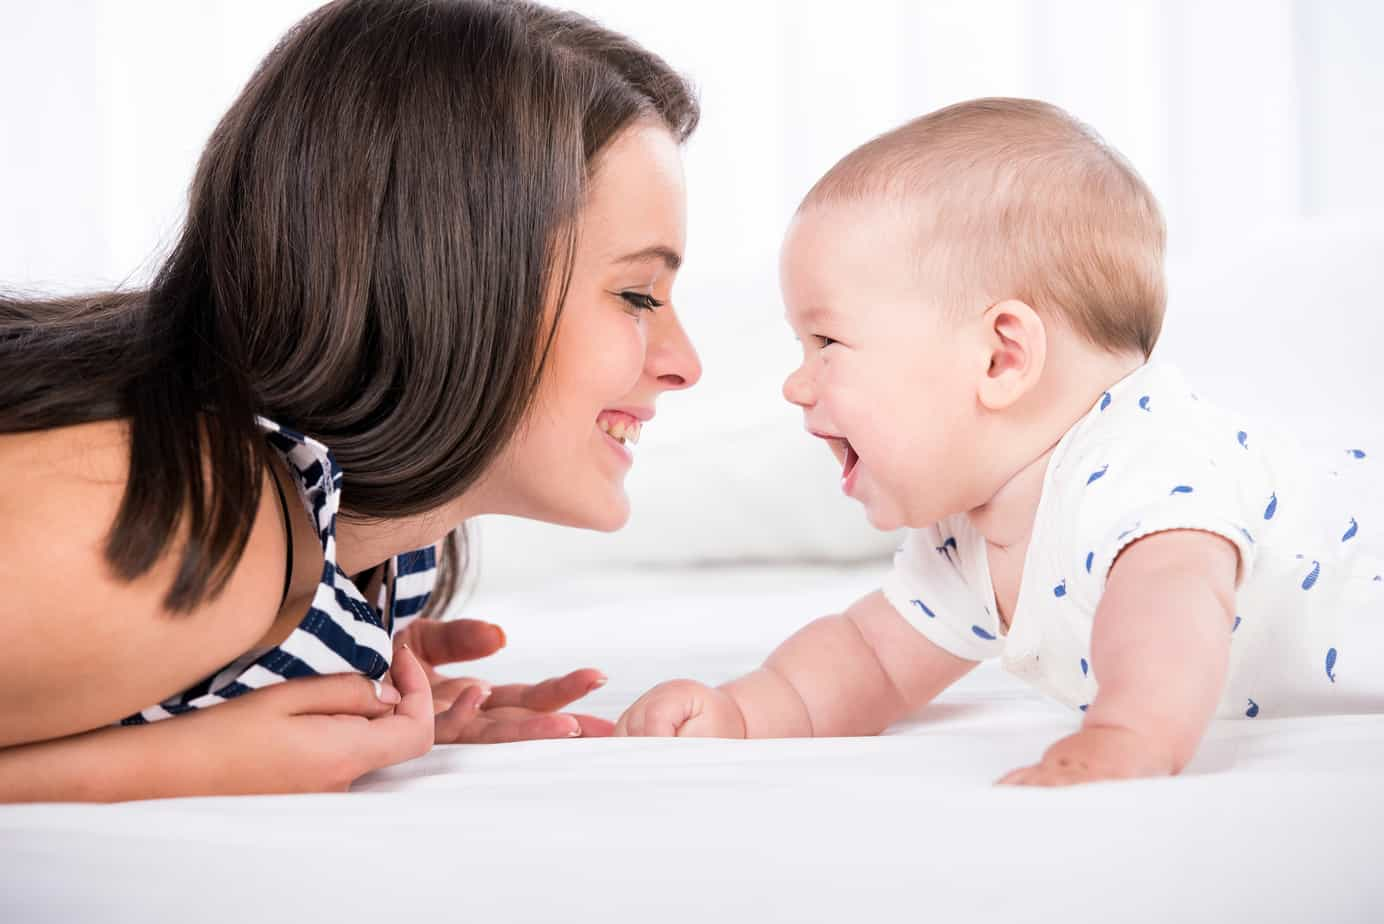 ways to play with your new baby (0-3 months)